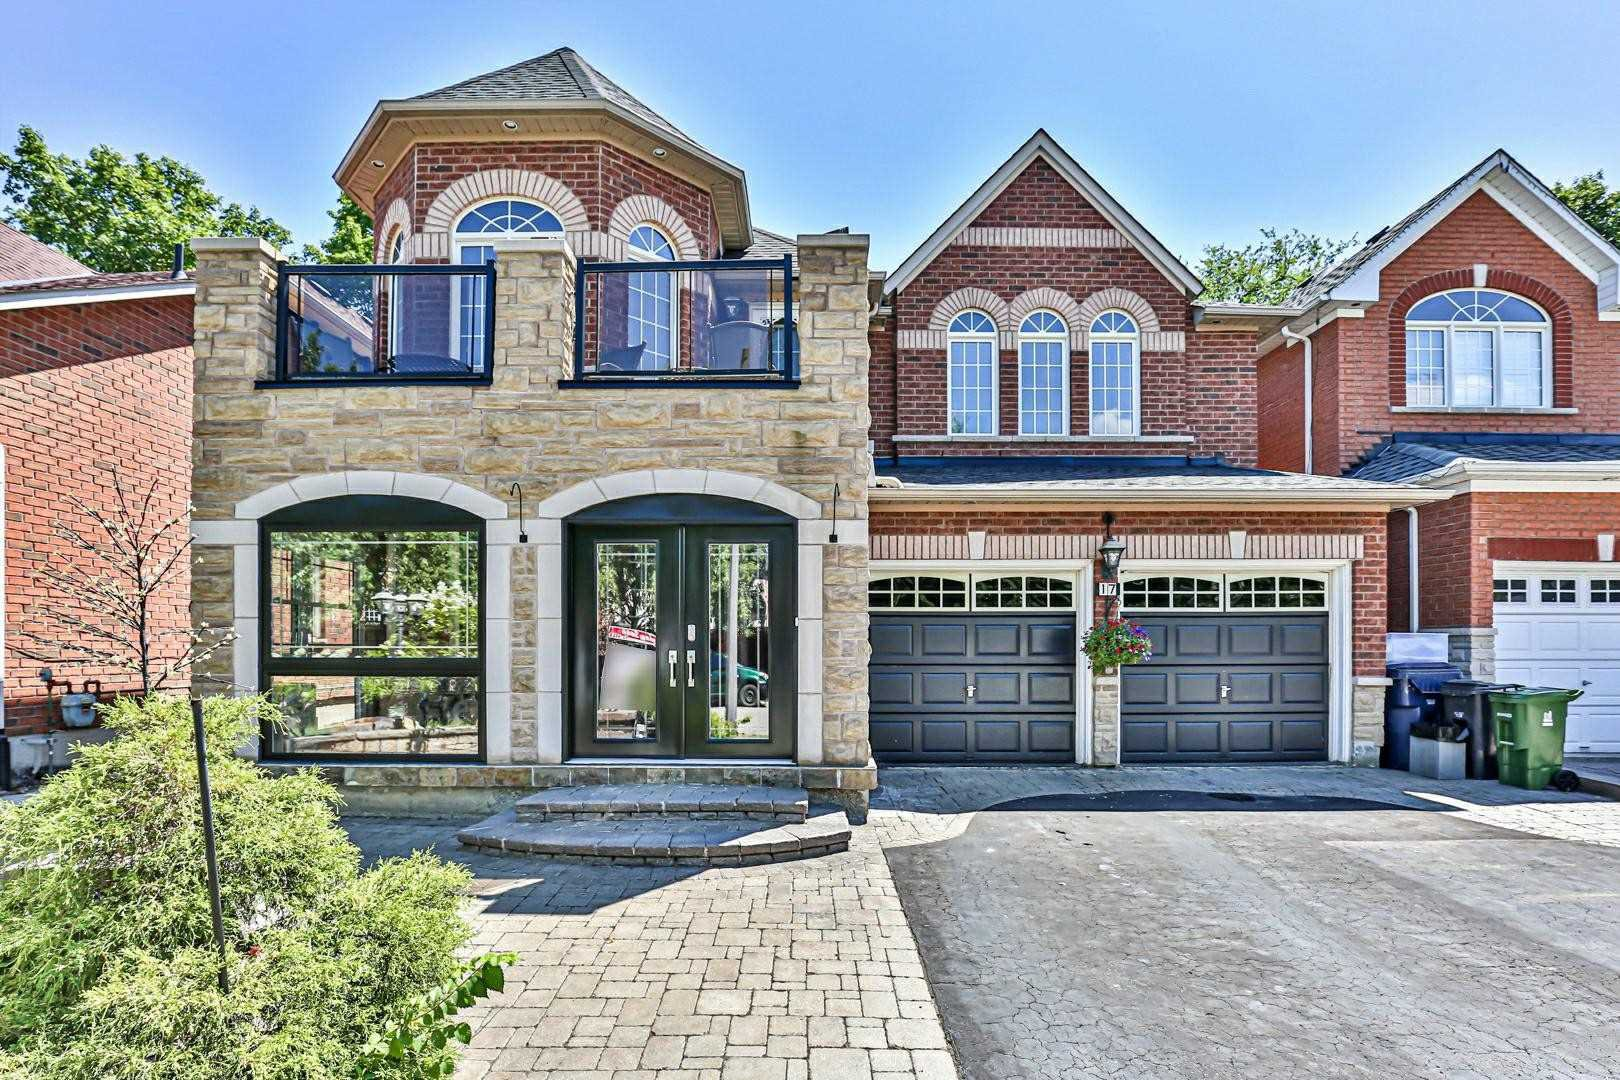 Main Photo: 17 Steppingstone Trail in Toronto: Rouge E11 House (2-Storey) for sale (Toronto E11)  : MLS®# E4871169